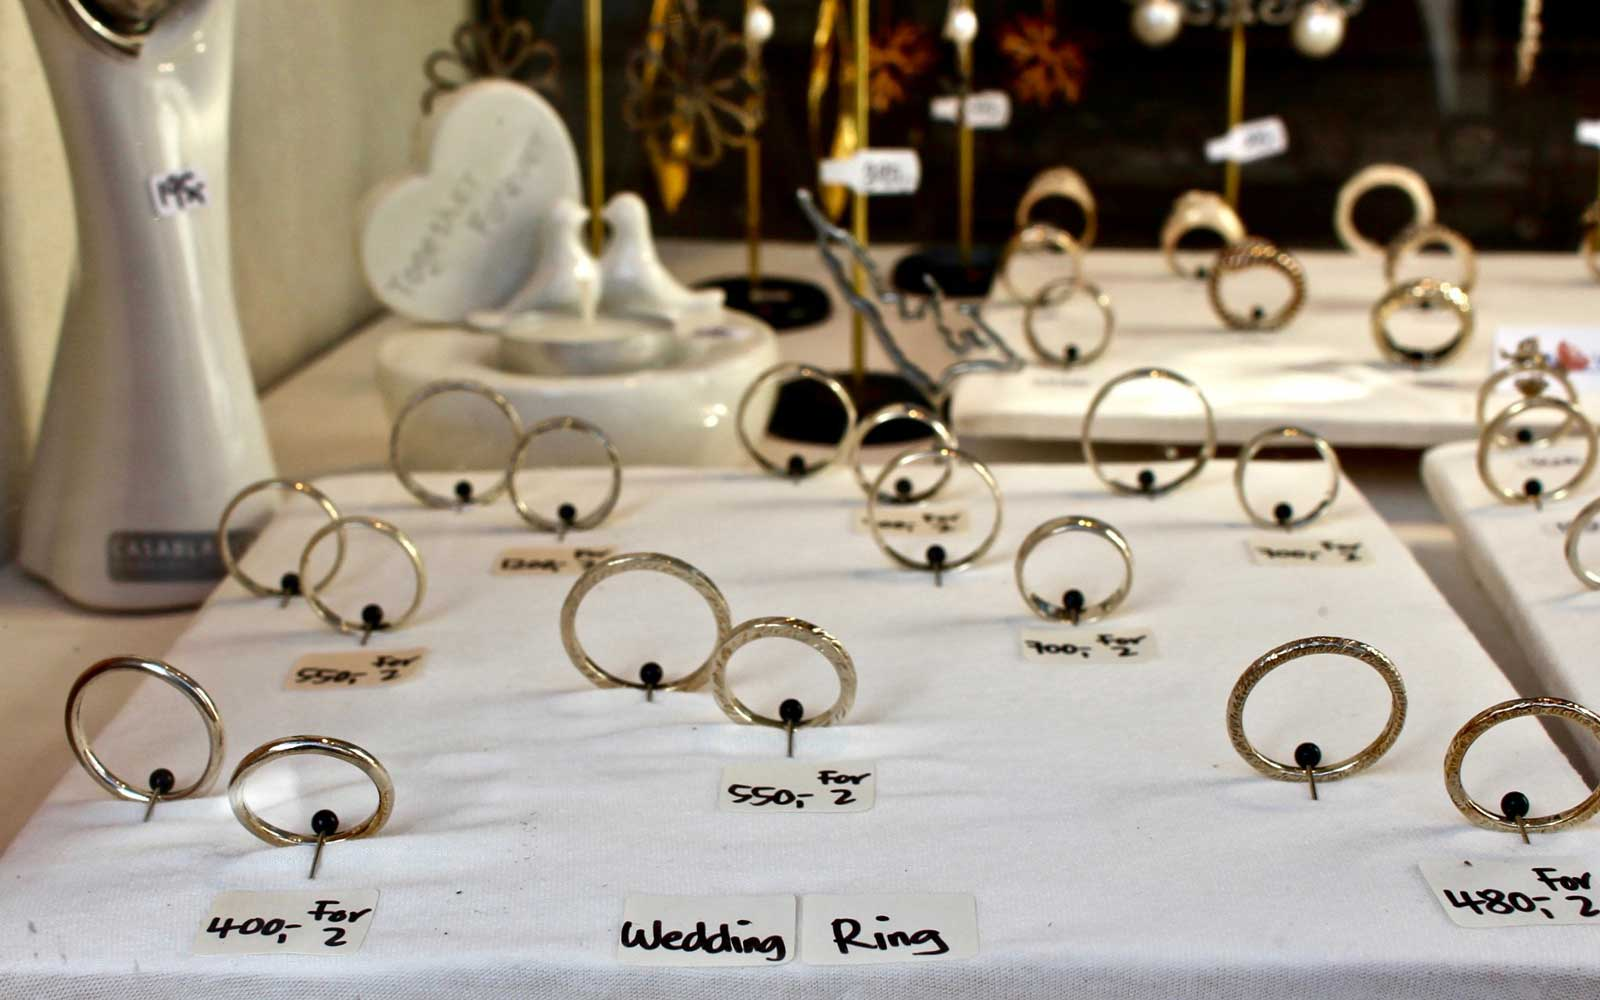 Wedding rings in a jewelry shop